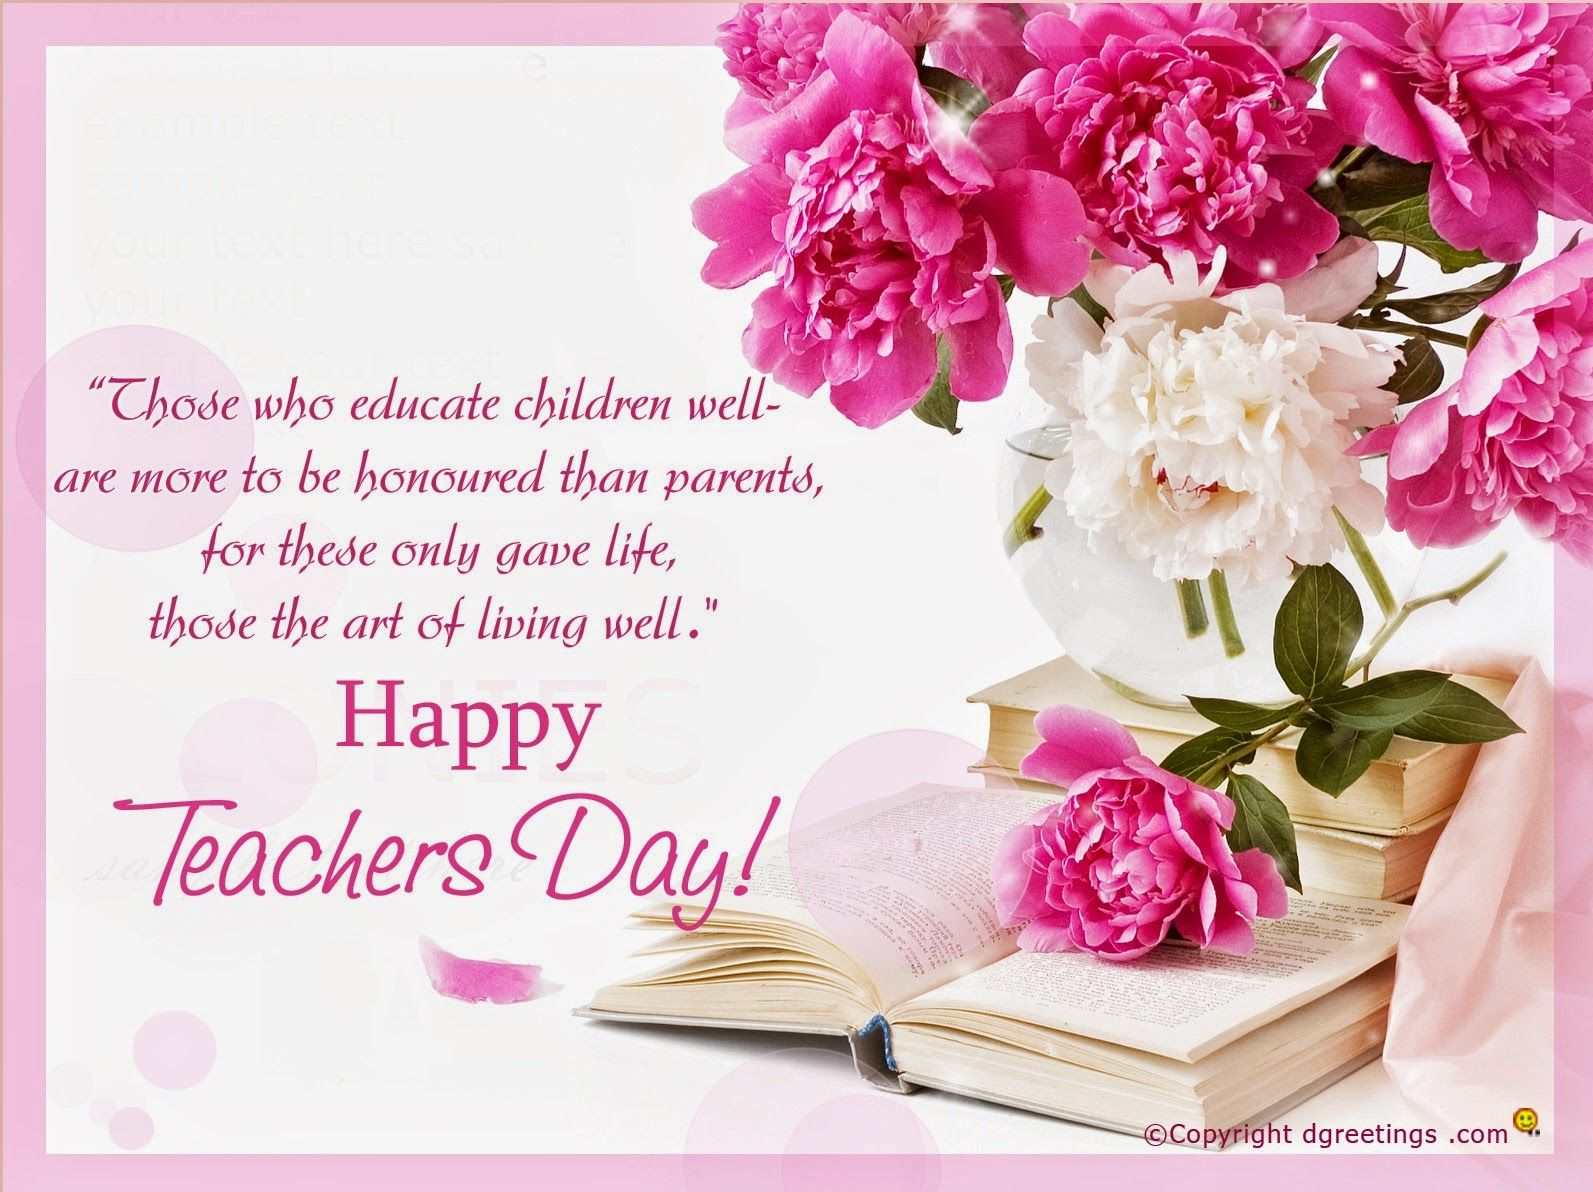 Happy Teachers Day Greetings Facebook Happy Teachers Day Card Teachers Day Greetings Happy Teachers Day Wishes